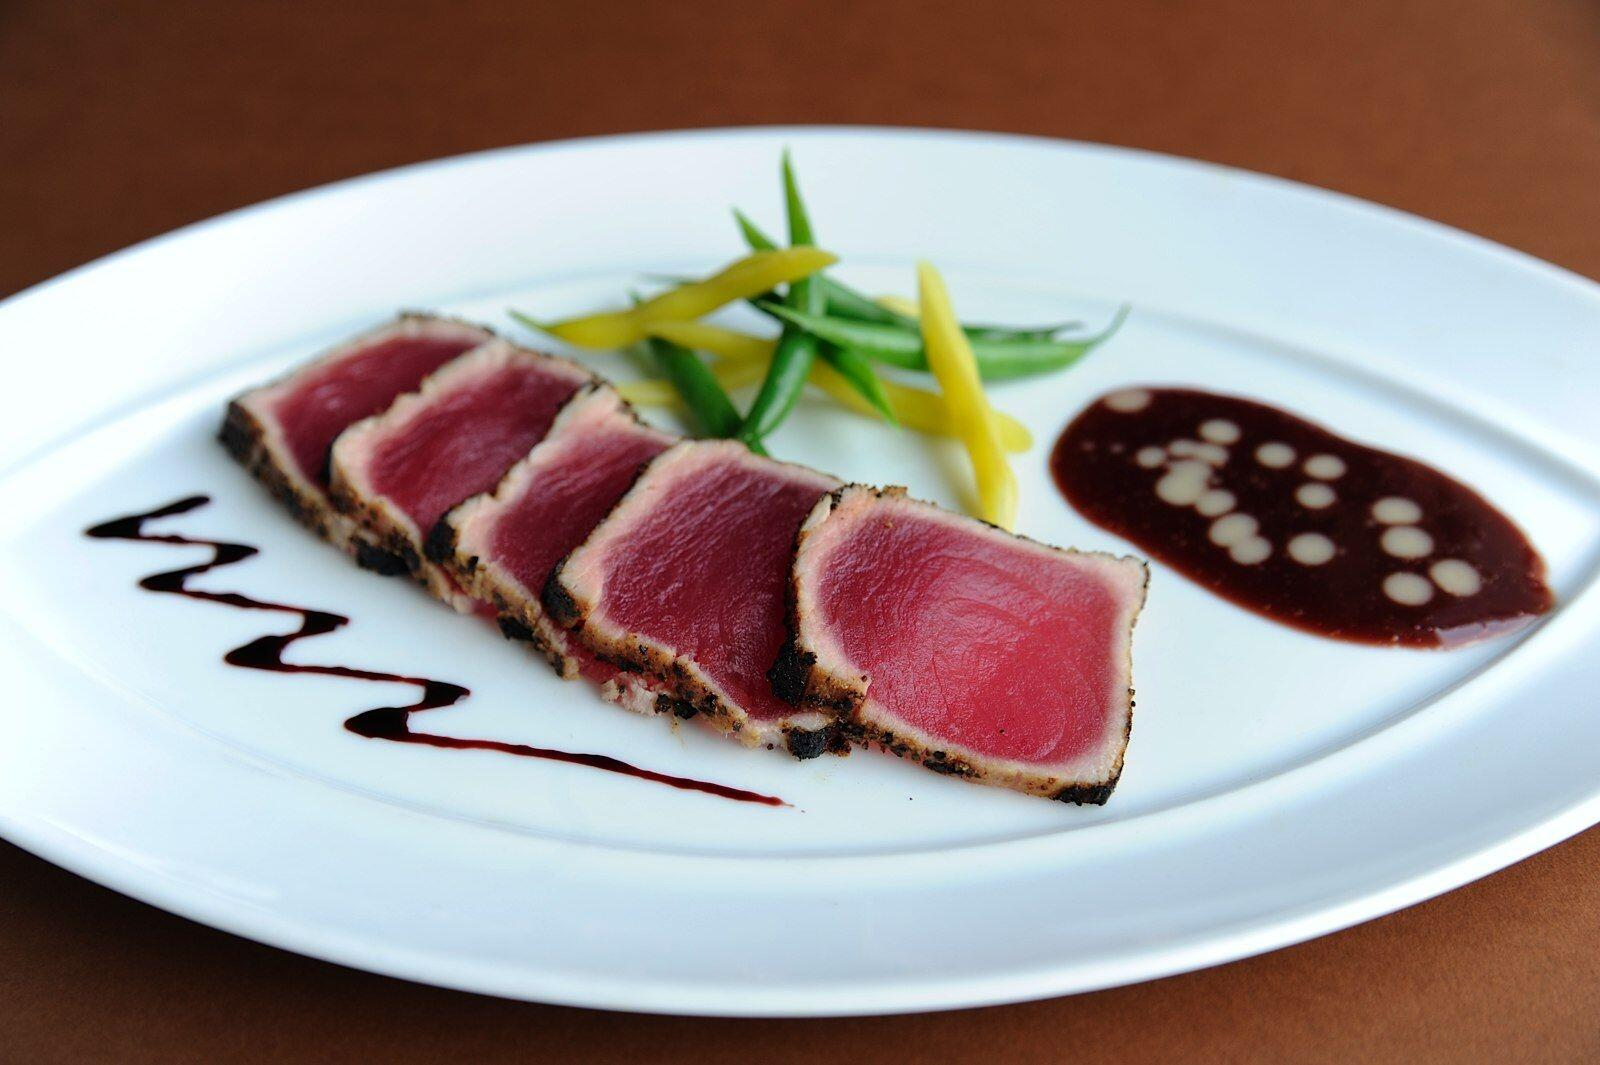 Seared yellowfin tuna dish